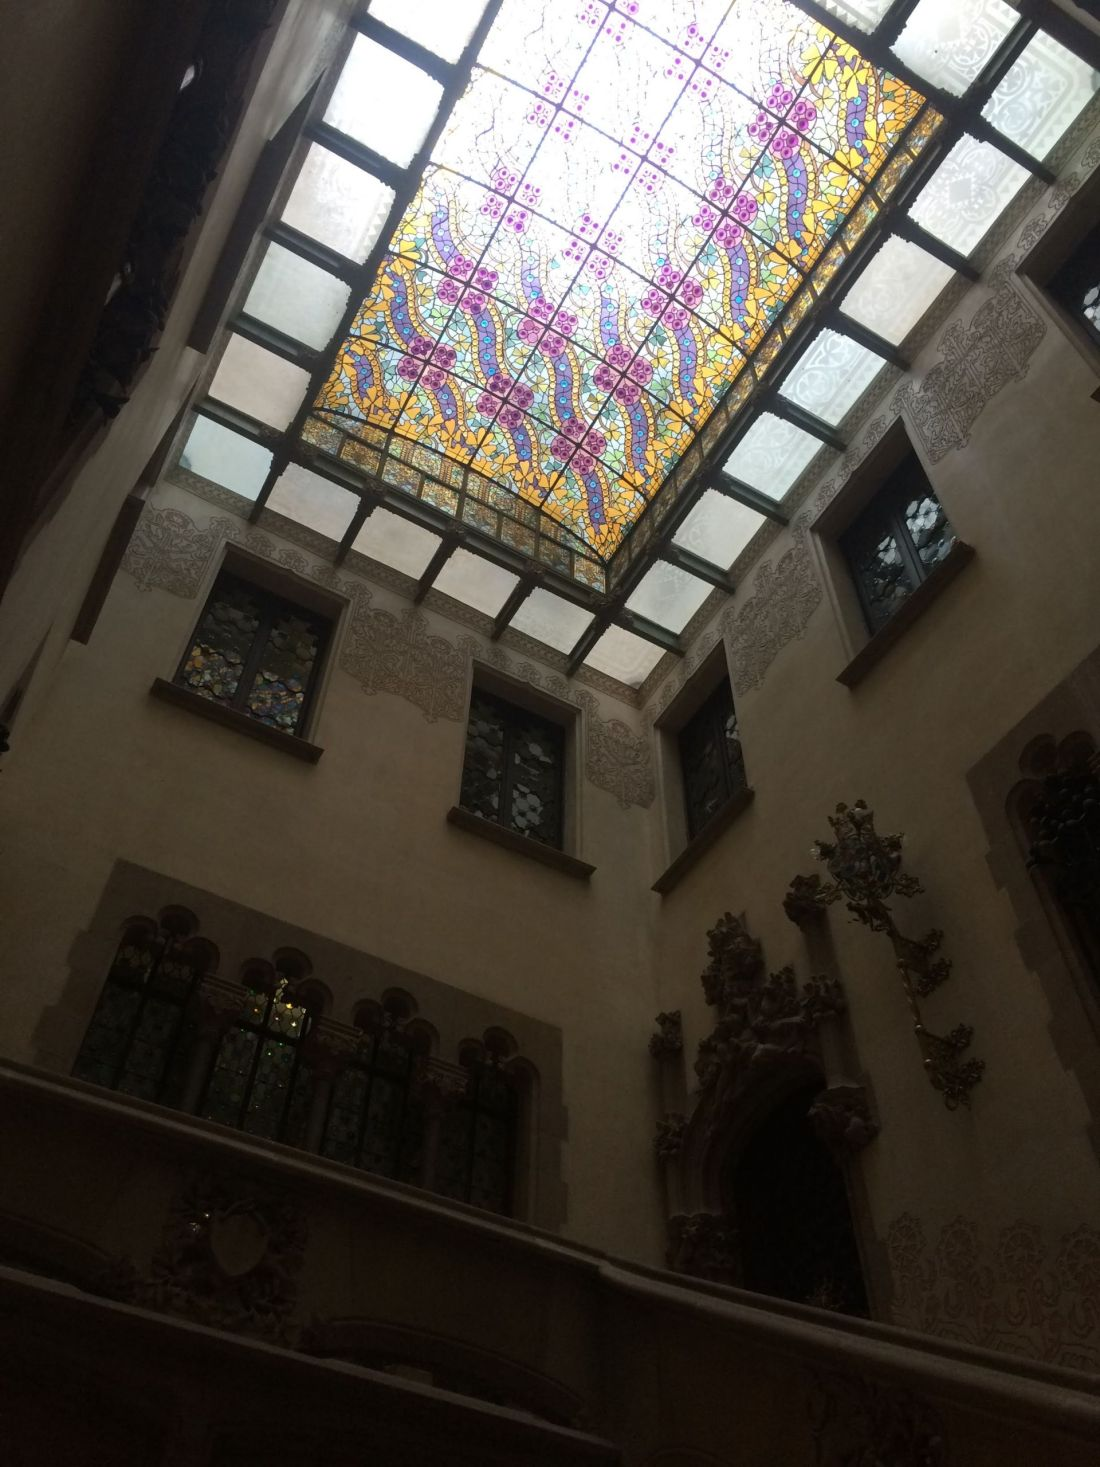 Stained glass ceiling of Casa Amatller, Barcelona